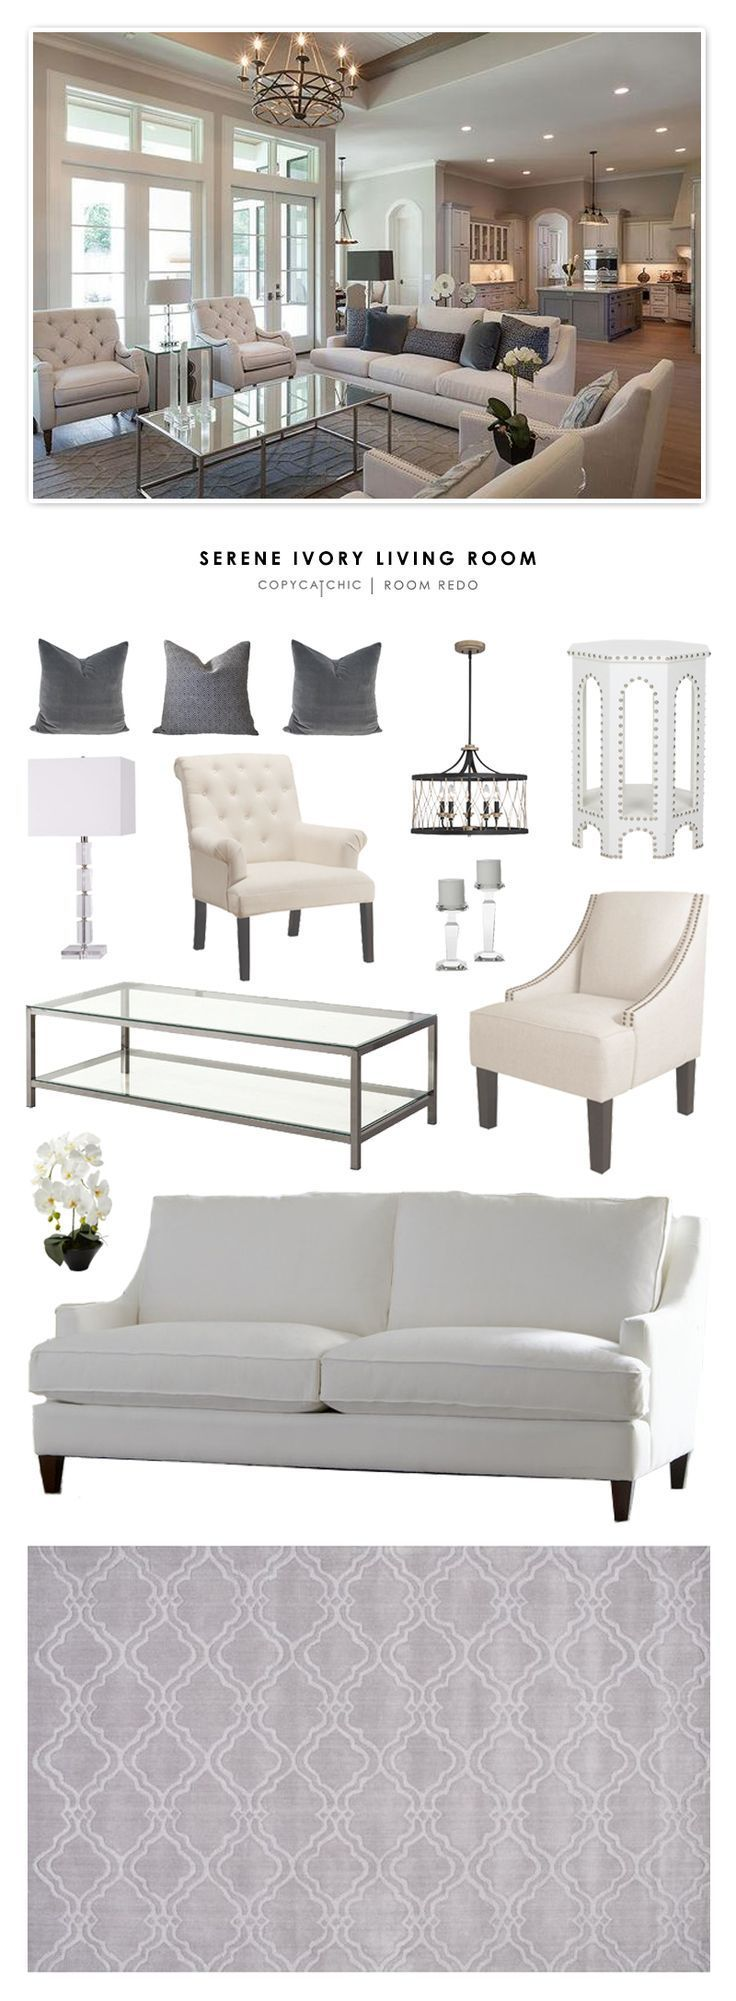 cool Copy Cat Chic Room Redo | Serene Ivory Living Room (| Copy Cat Chic | chic for cheap) by http://www.99homedecorpictures.us/transitional-decor/copy-cat-chic-room-redo-serene-ivory-living-room-copy-cat-chic-chic-for-cheap/